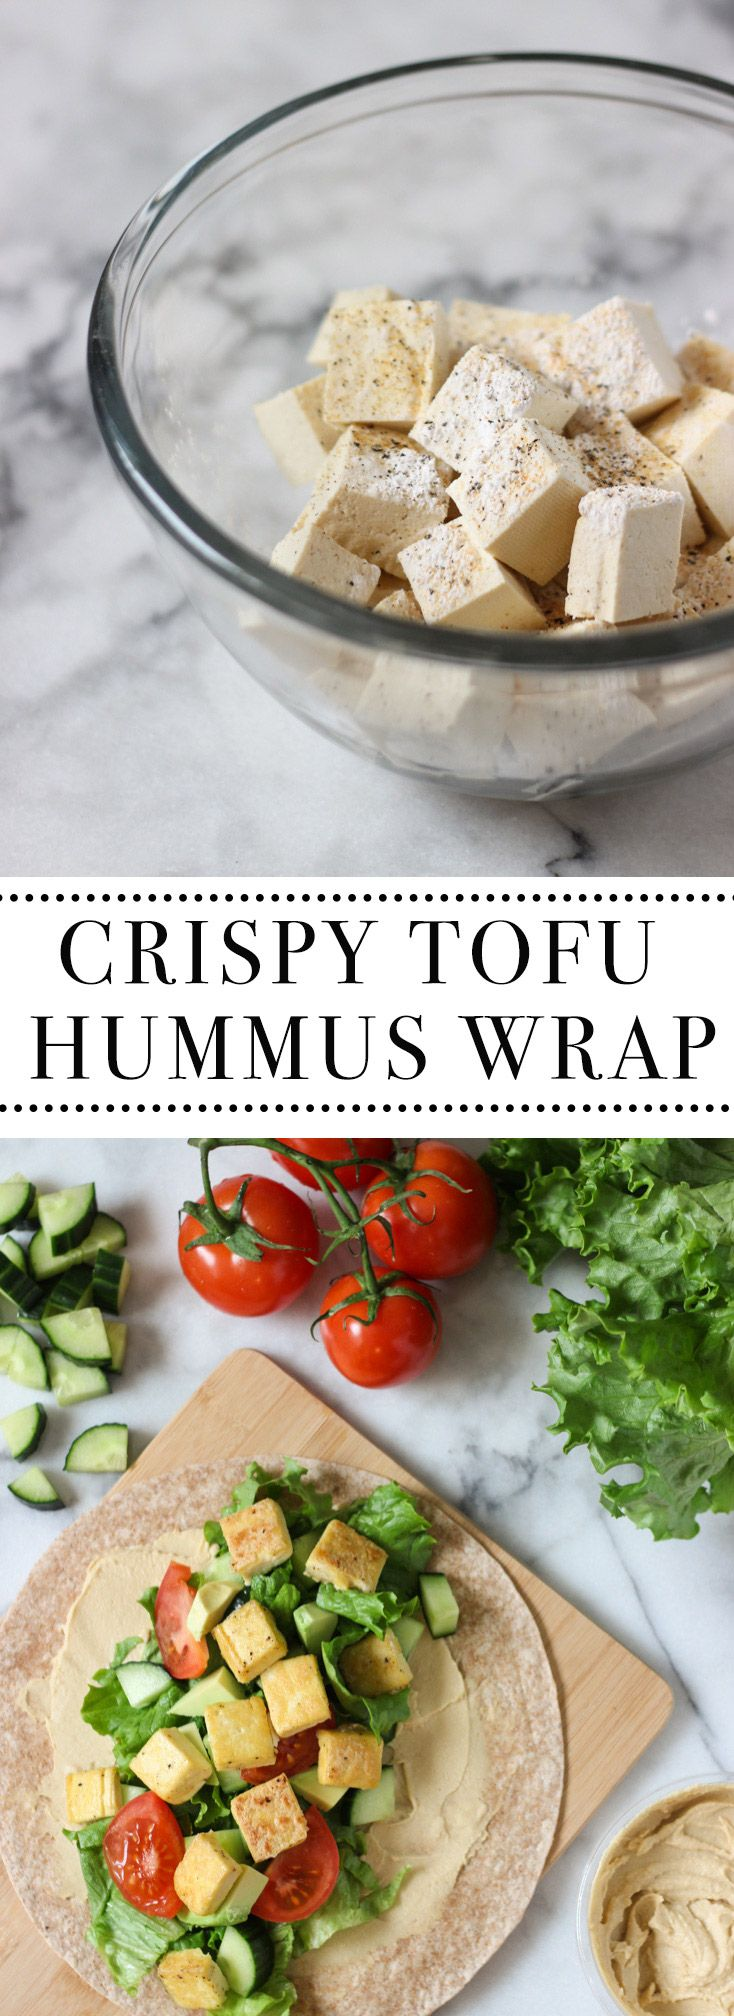 Crispy Tofu Hummus Wrap recipe is the perfect healthy lunch idea! Easy to make, loaded with protein and super tasty! Exploring Healthy Foods